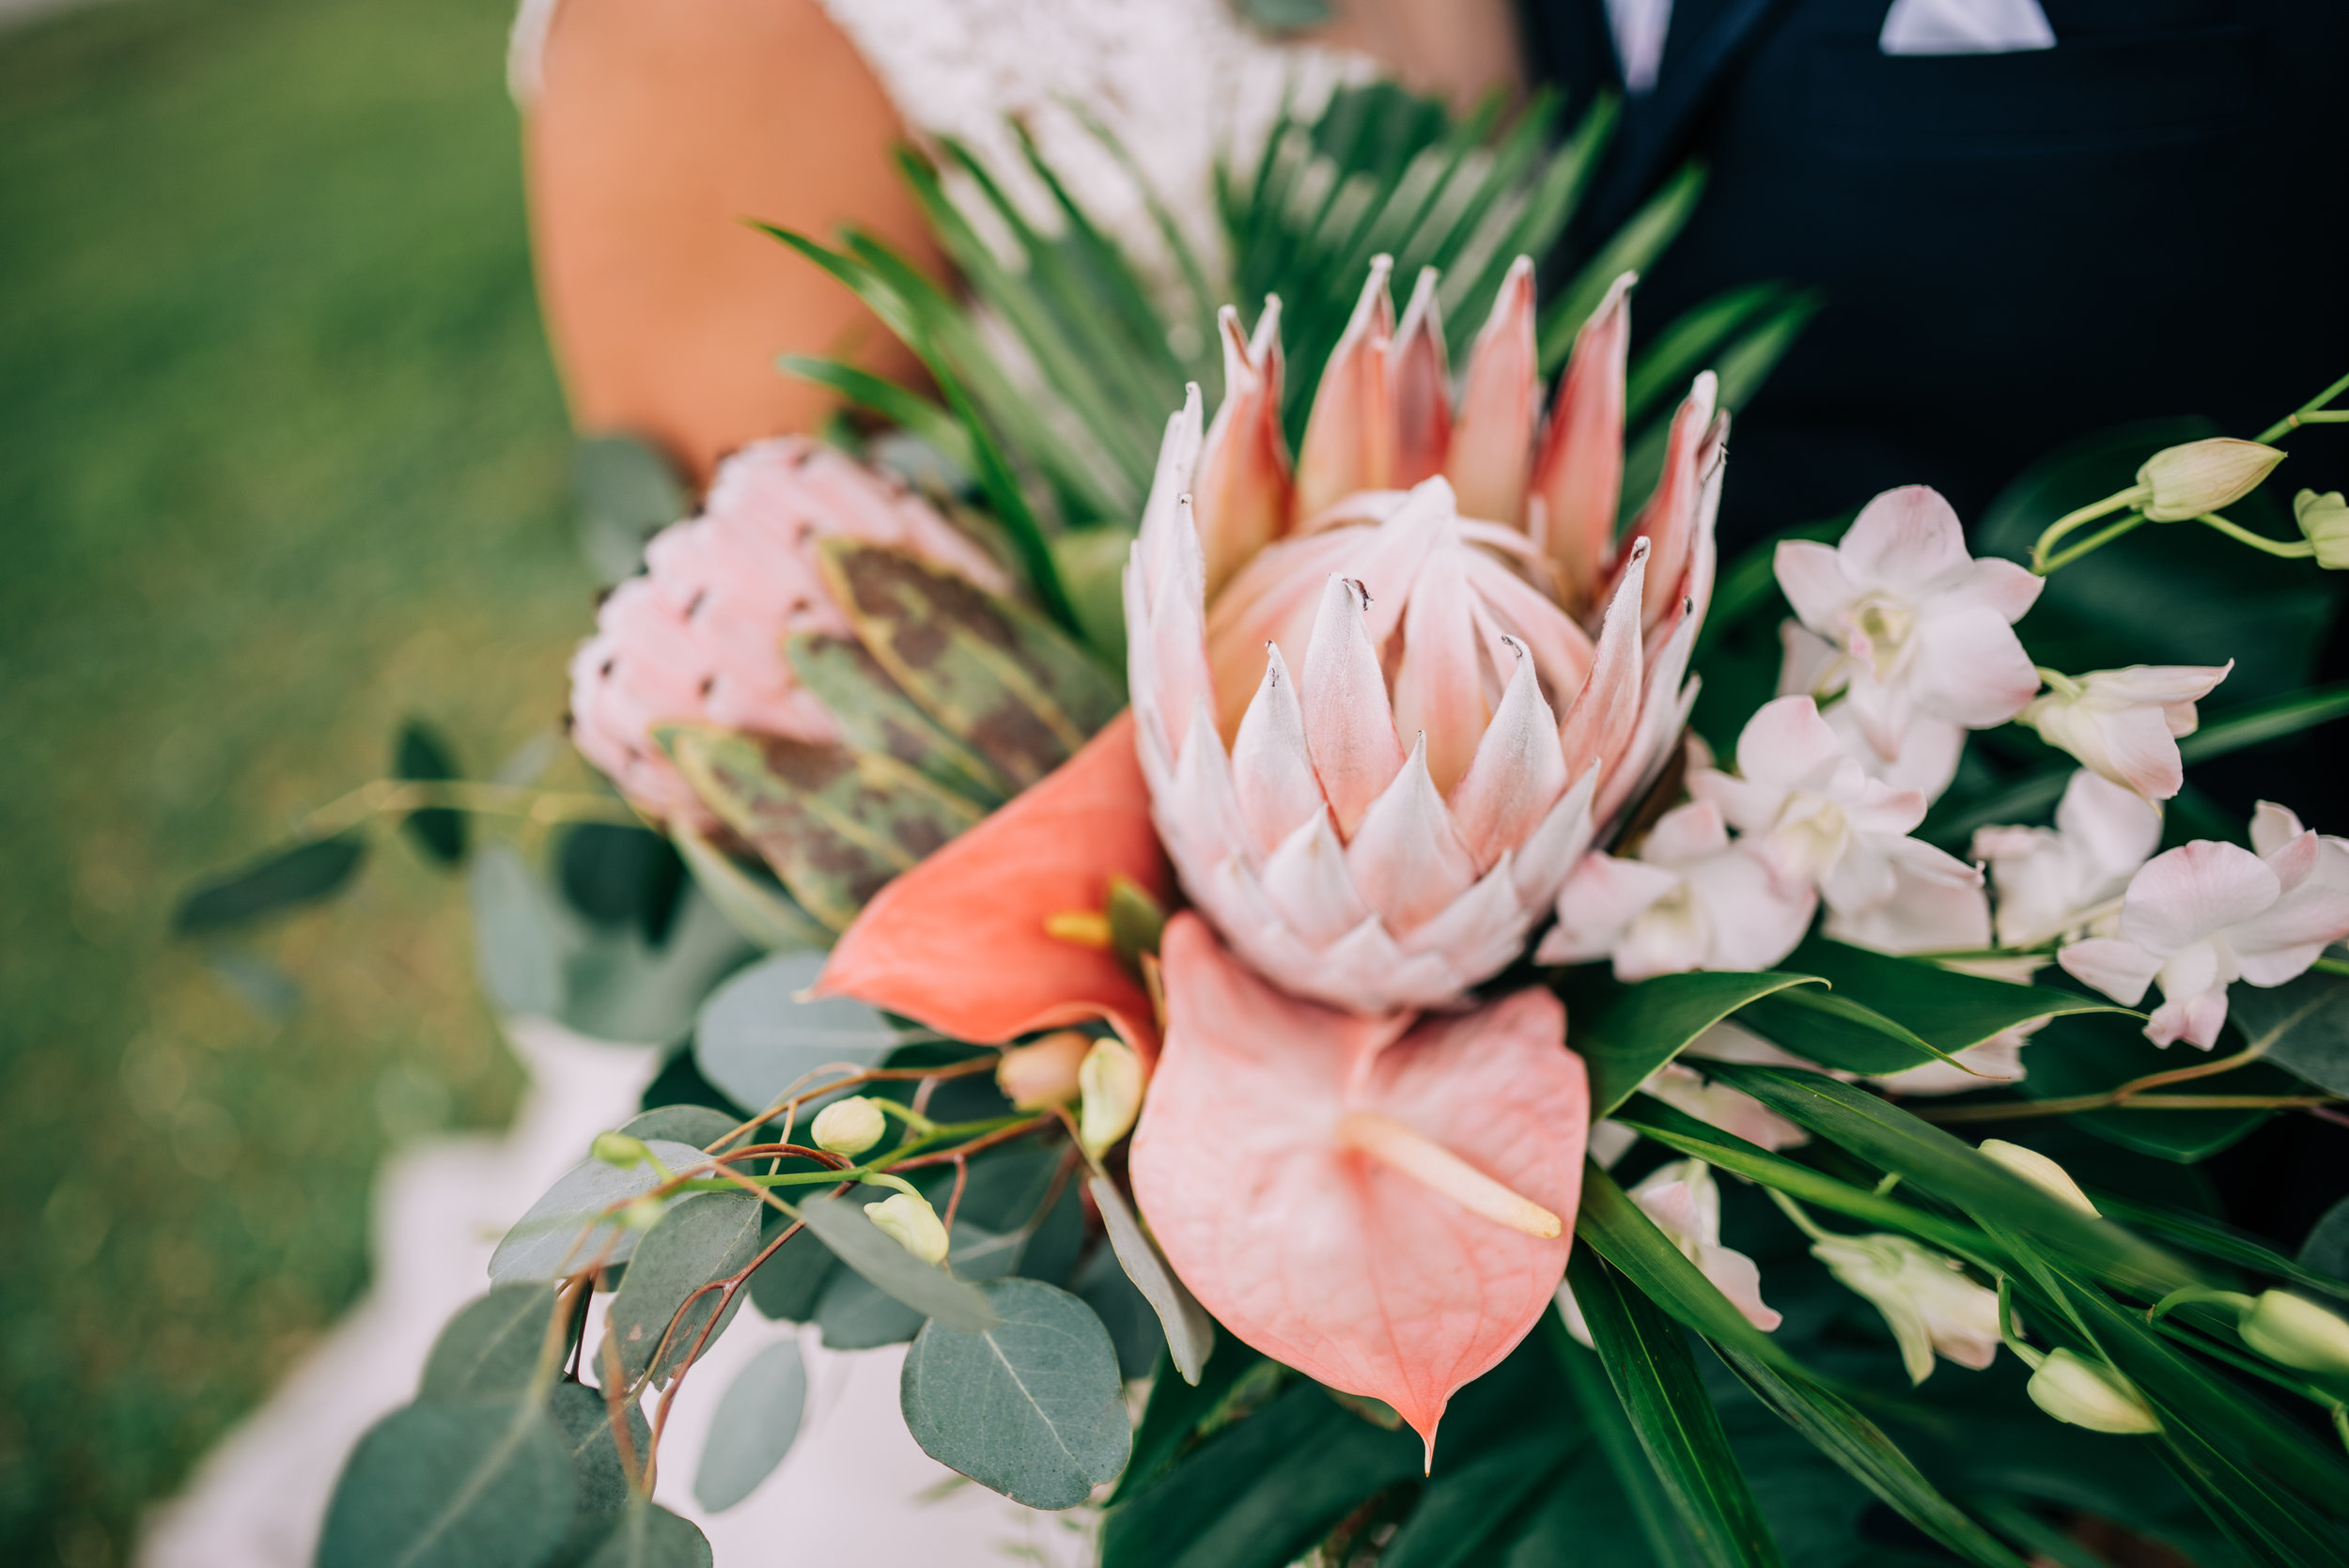 16 bride bouquet tropical flower bouquet king protea laceleaf orchid bouquet shades of pink bouquet grand bouquet Life Design Events photos by Josh Snyder Photography.jpg